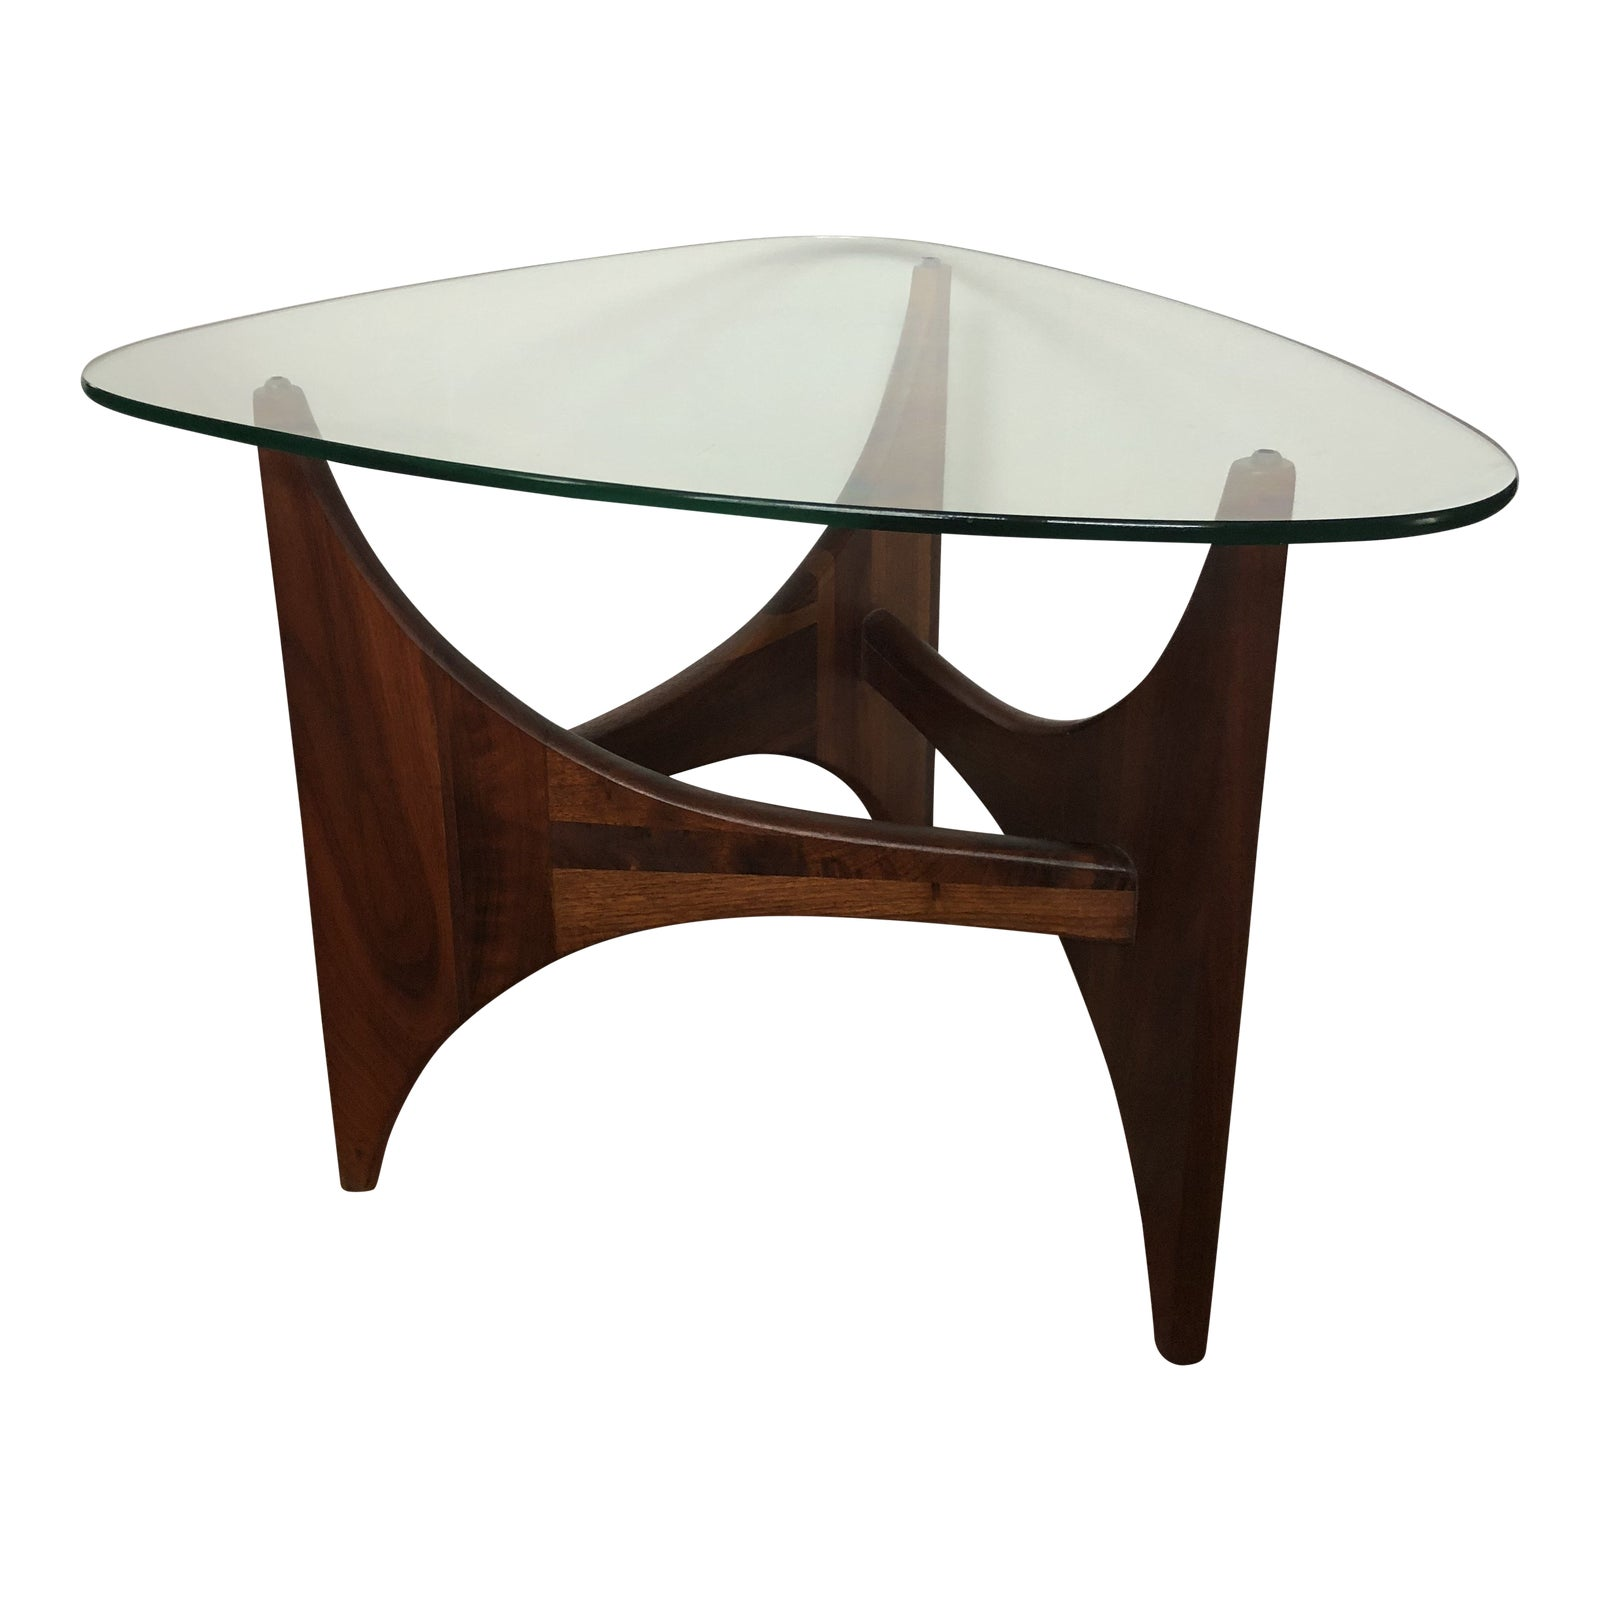 Adrian pearsall for craft associates tripod glass top side table chairish